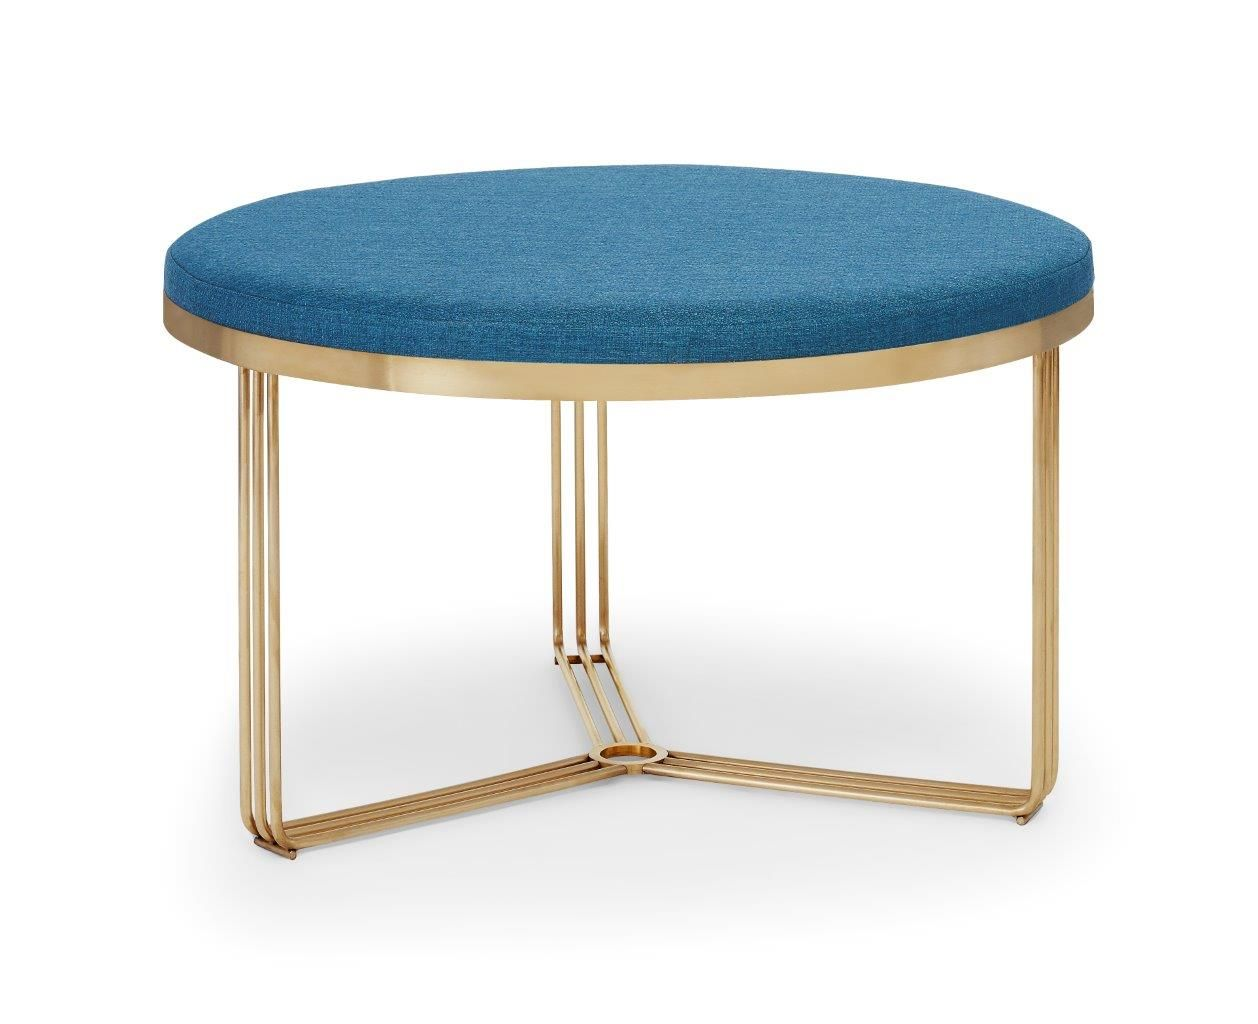 Gillmore Finn Collection Small Circular Coffee Table/Footstool with Upholstered Top and Brass Frame